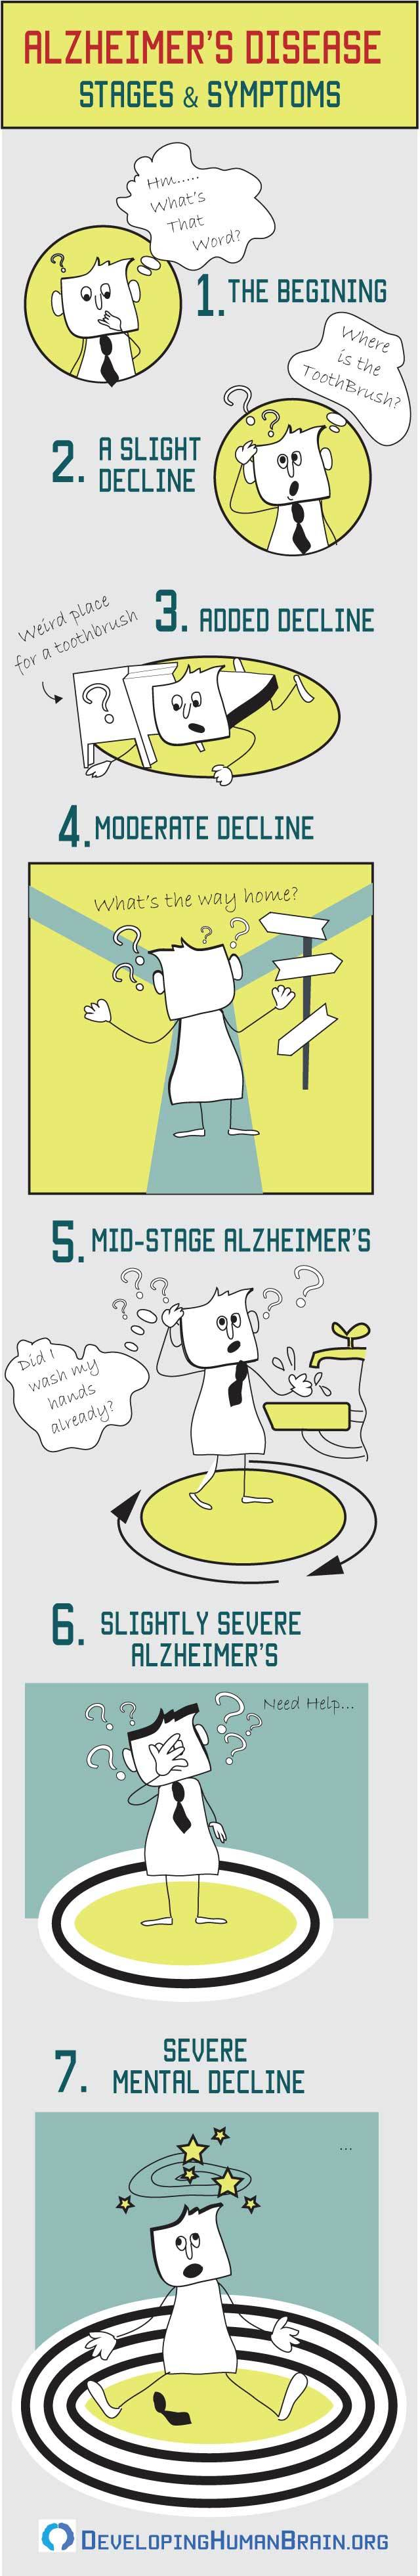 alzheimer's disease symptoms and stages infographic